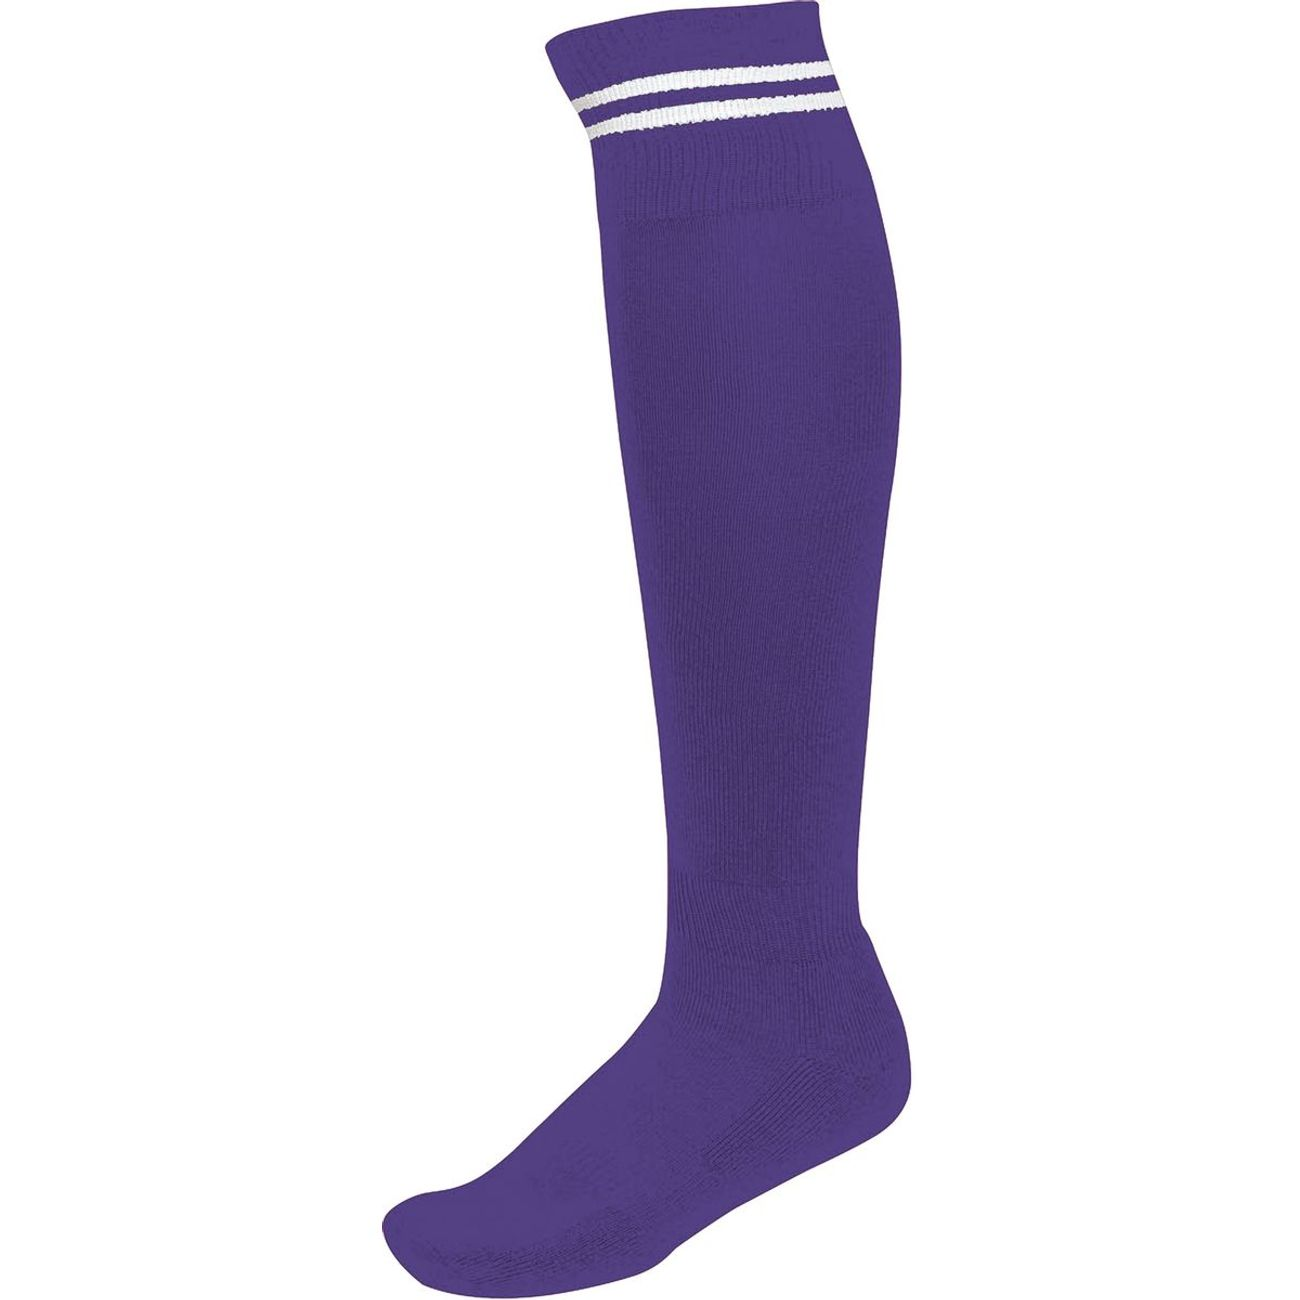 Violet Homme Football Chaussettes Rayure SportPa015 Blanche Proact 8m0wNvn